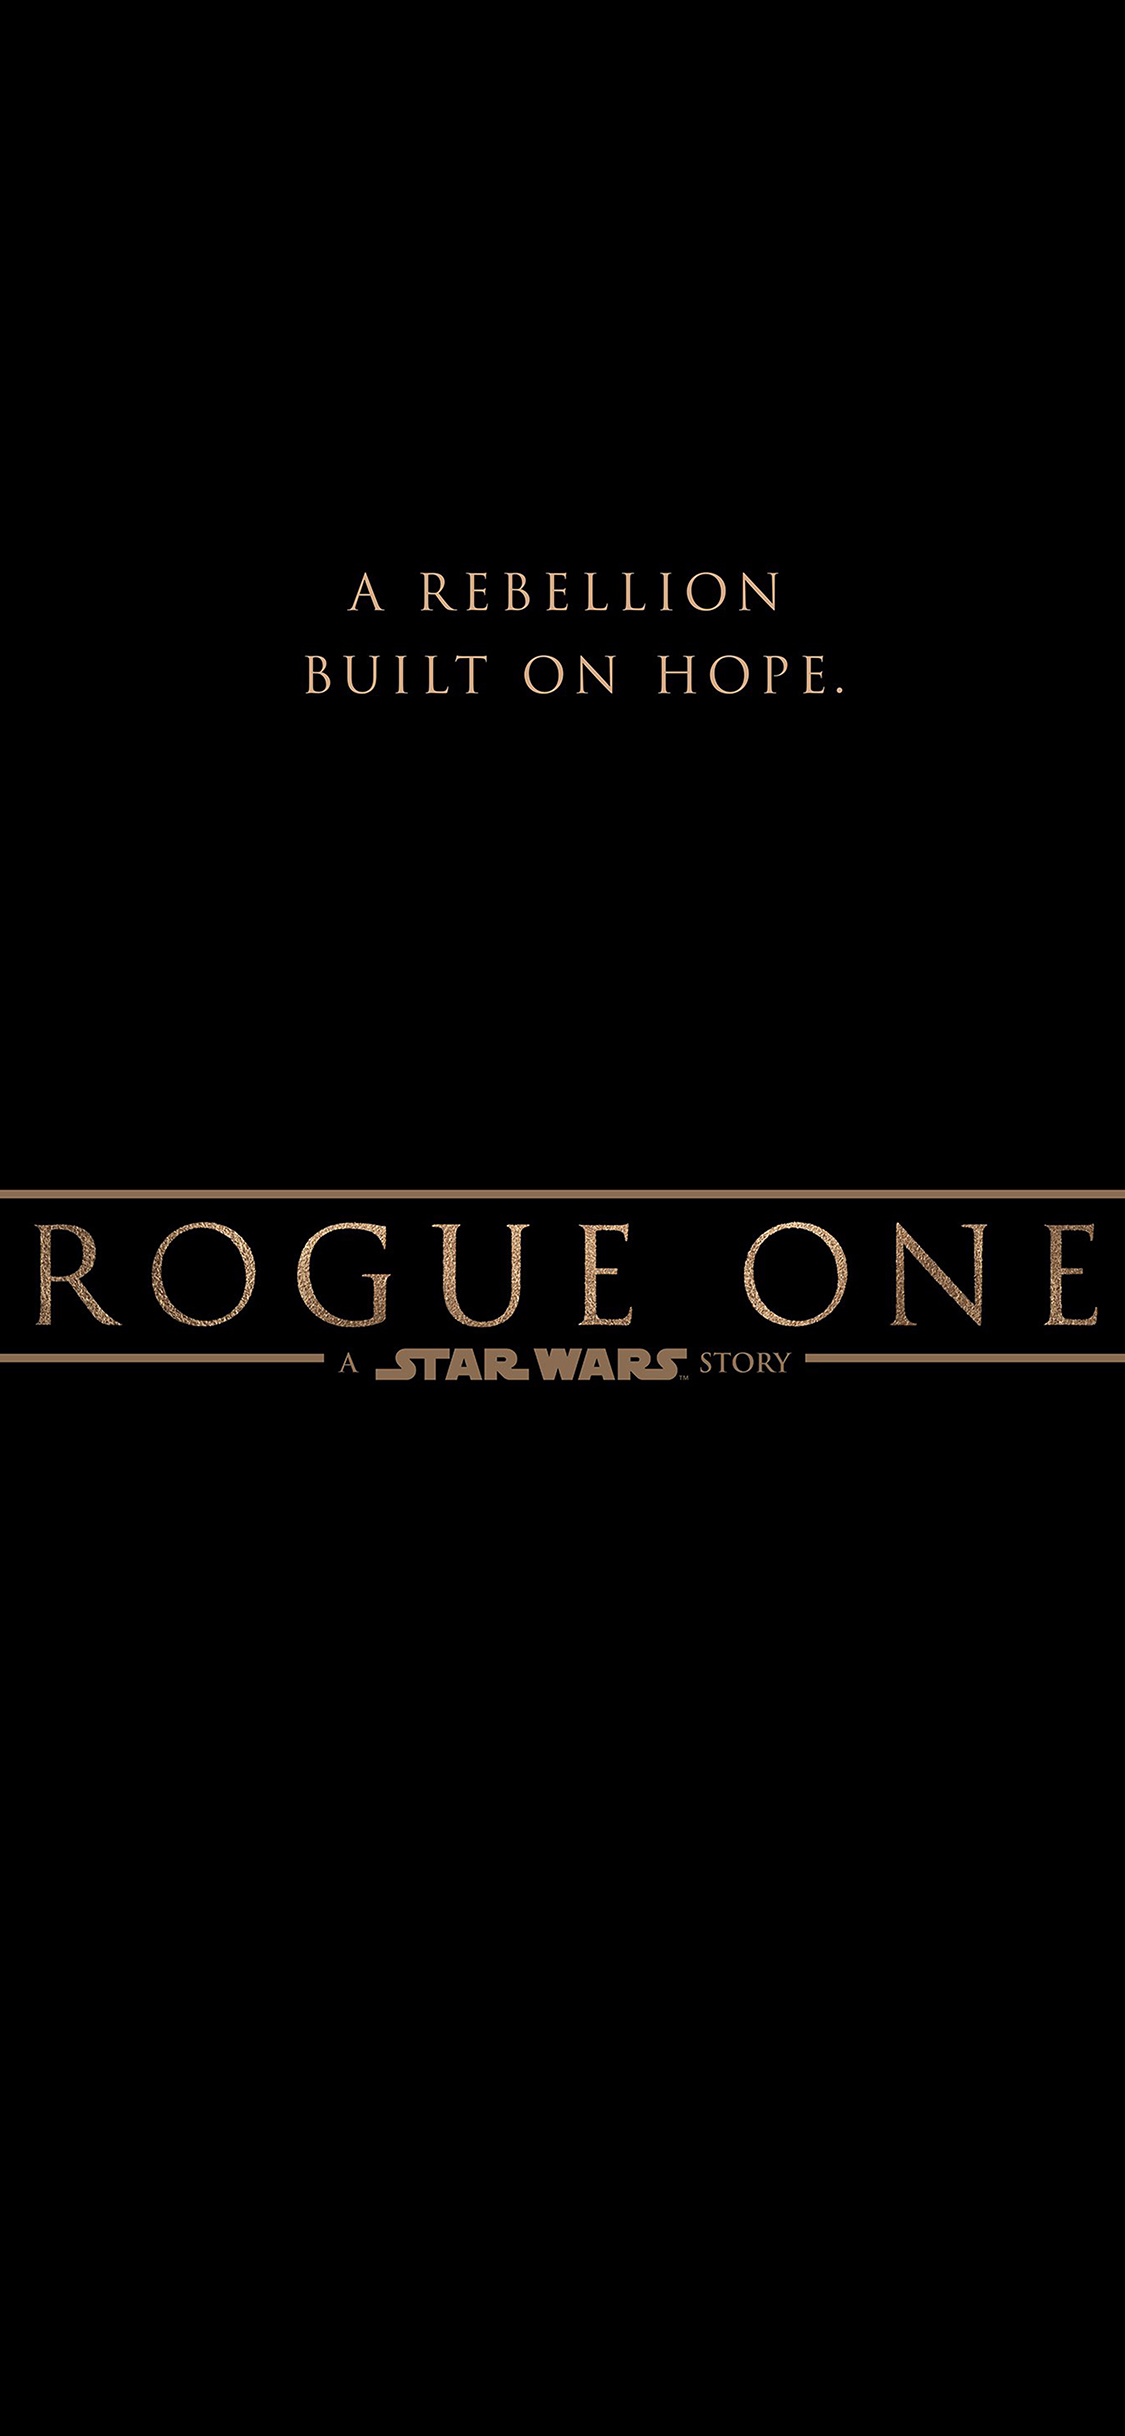 iPhoneXpapers.com-Apple-iPhone-wallpaper-aw03-rogue-one-starwars-poster-logo-illustration-art-movie